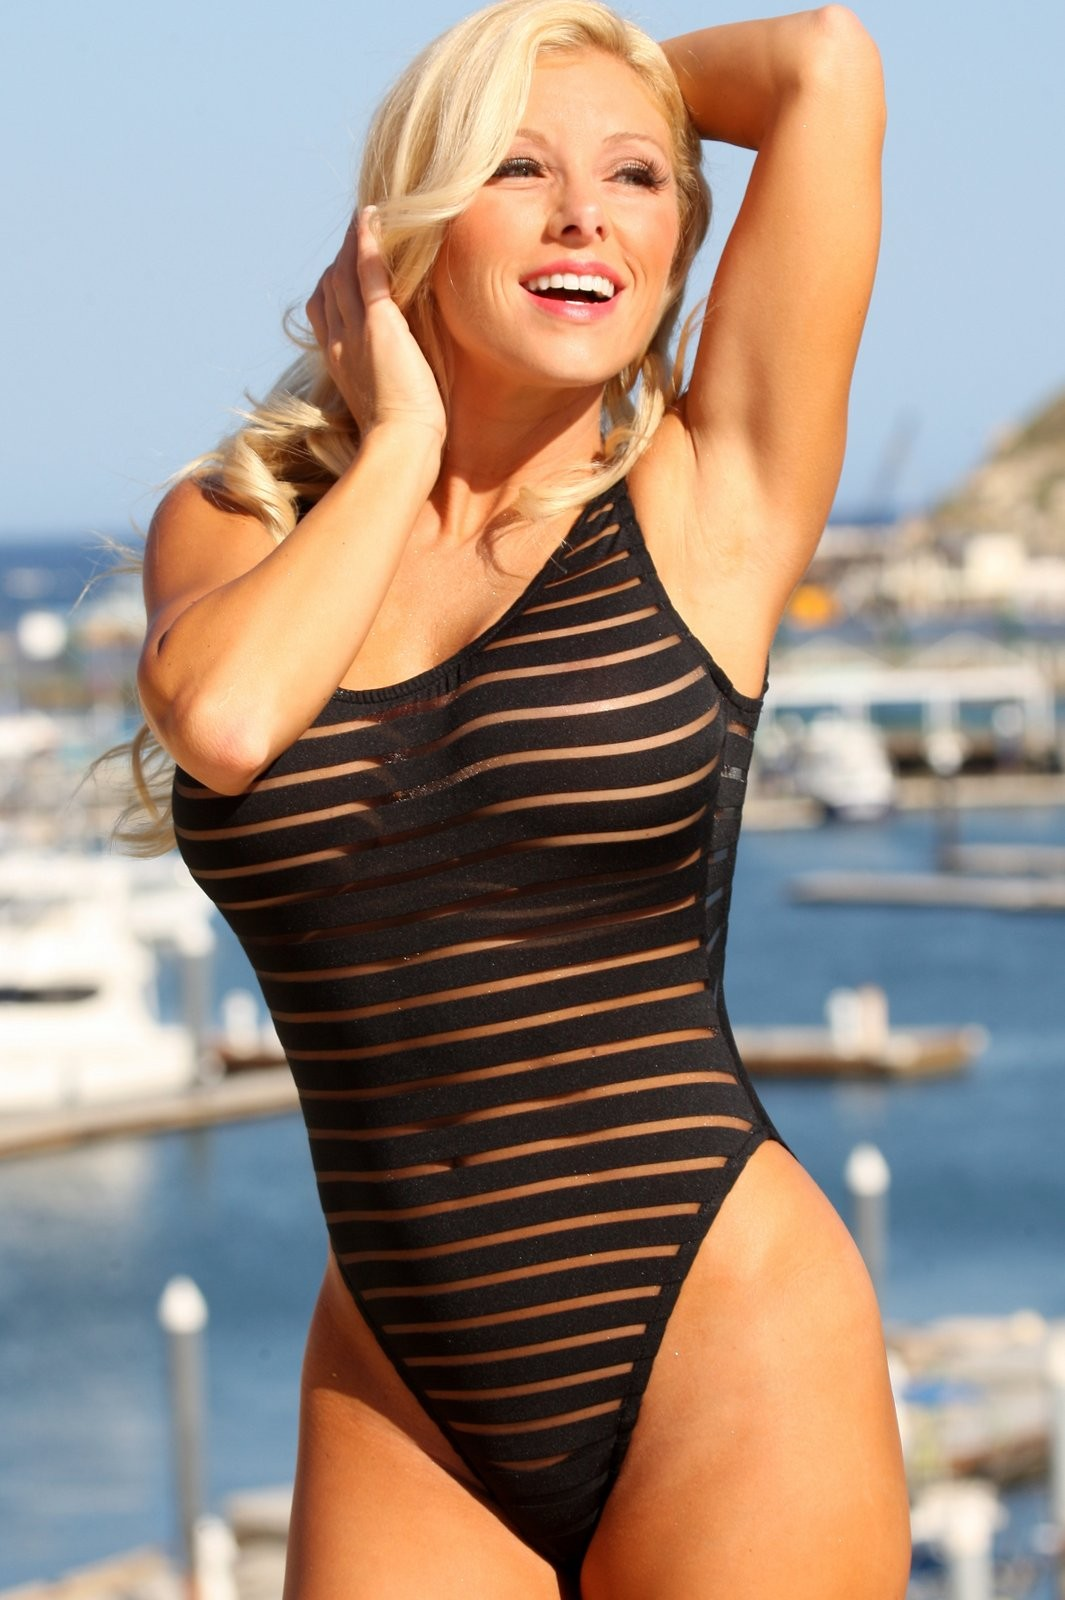 Sensual-See-Through-Black-Sheer-Striped-One-Piece-Swimsuit